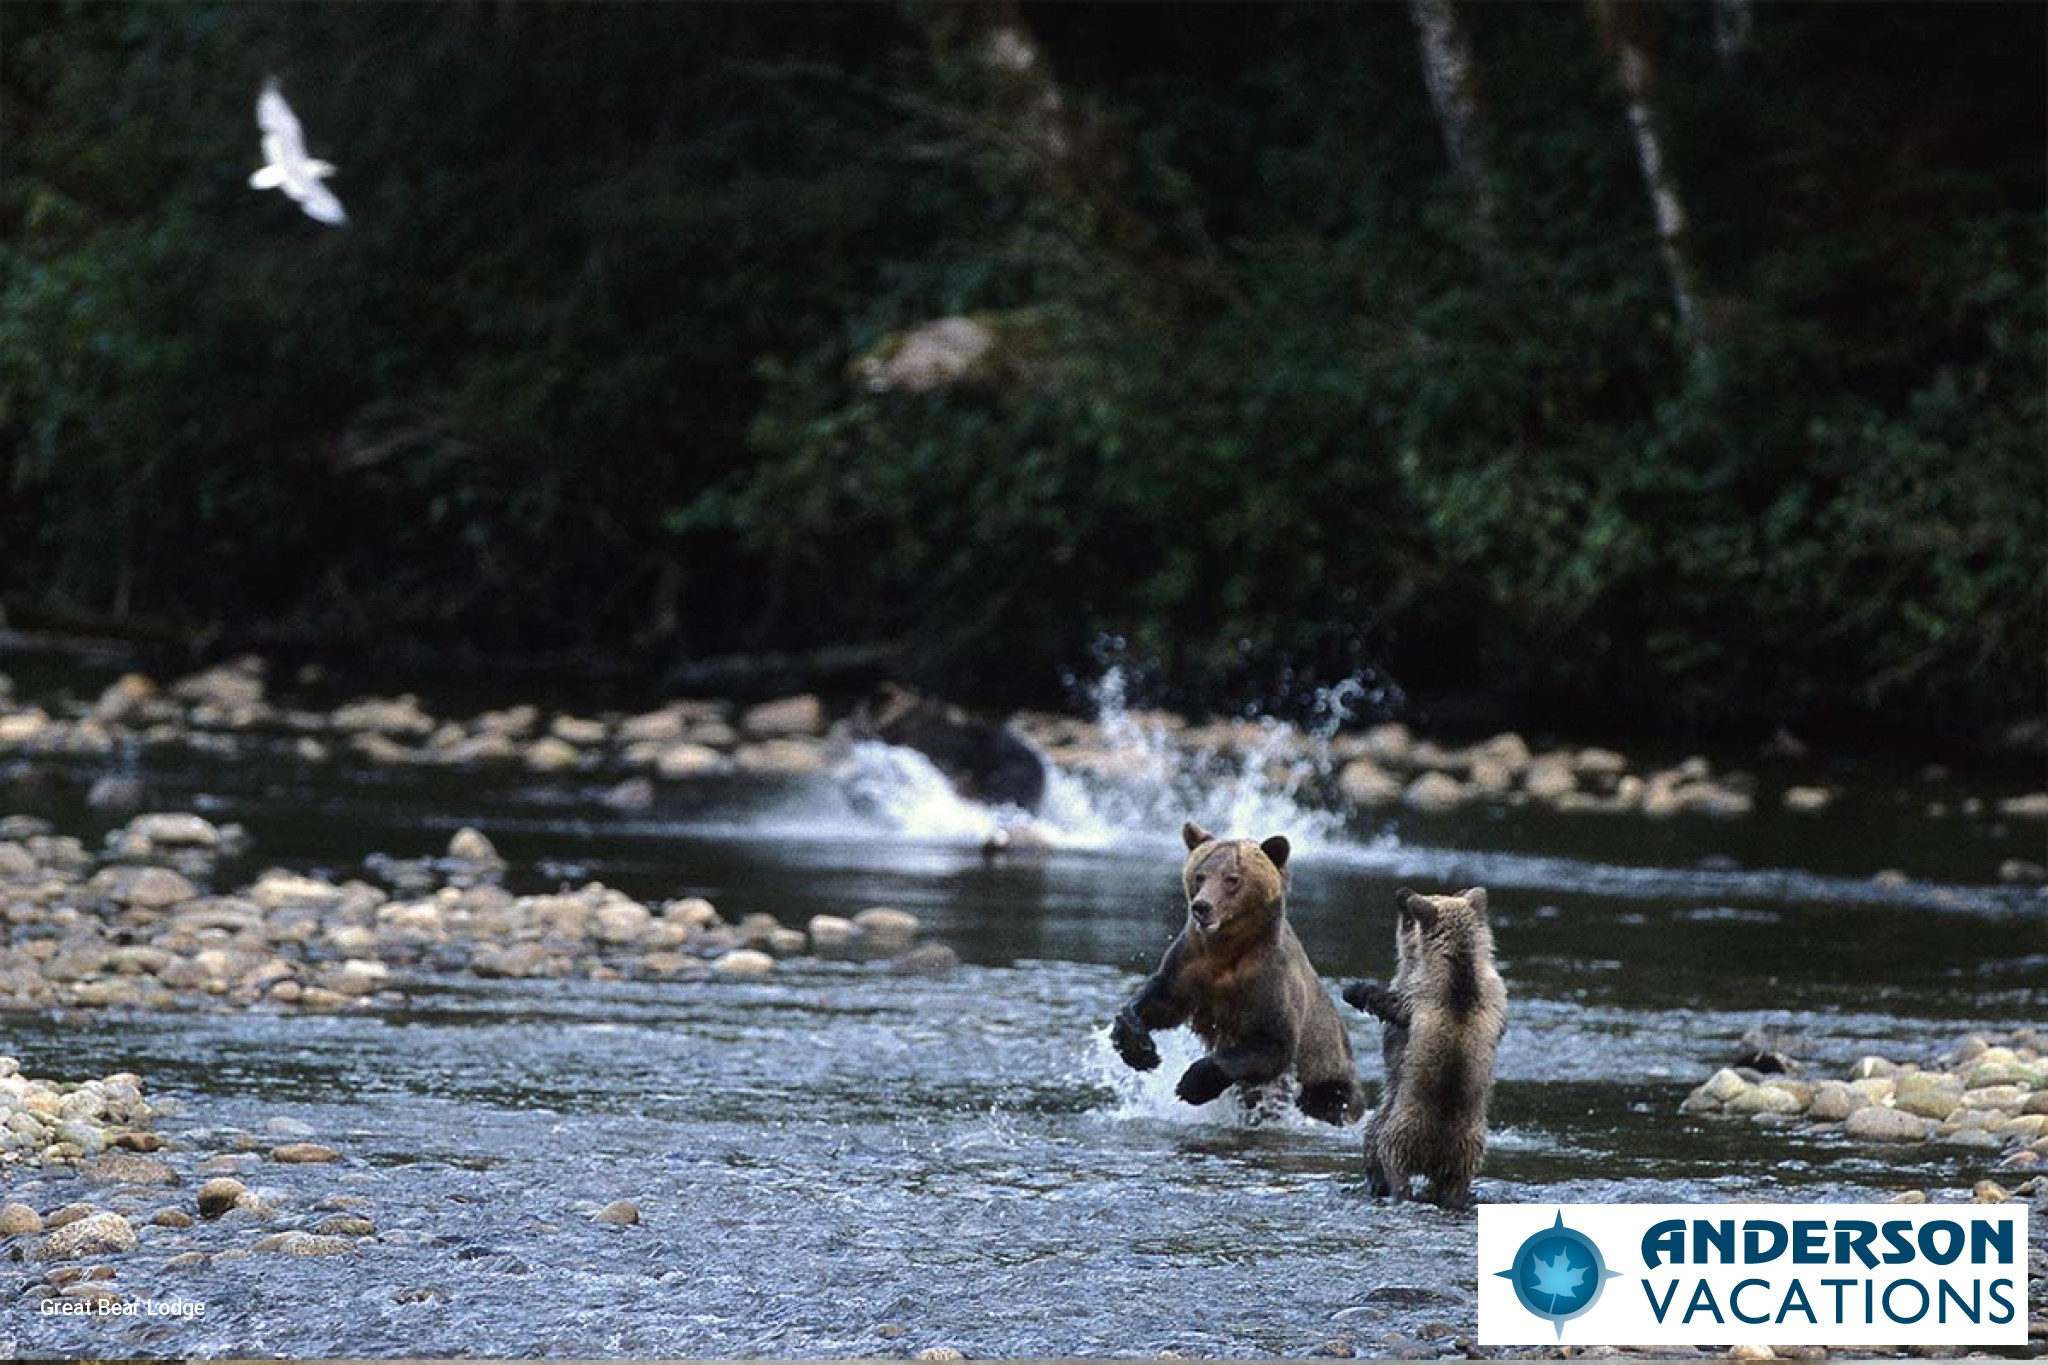 Bears in their natural environment catching salmon